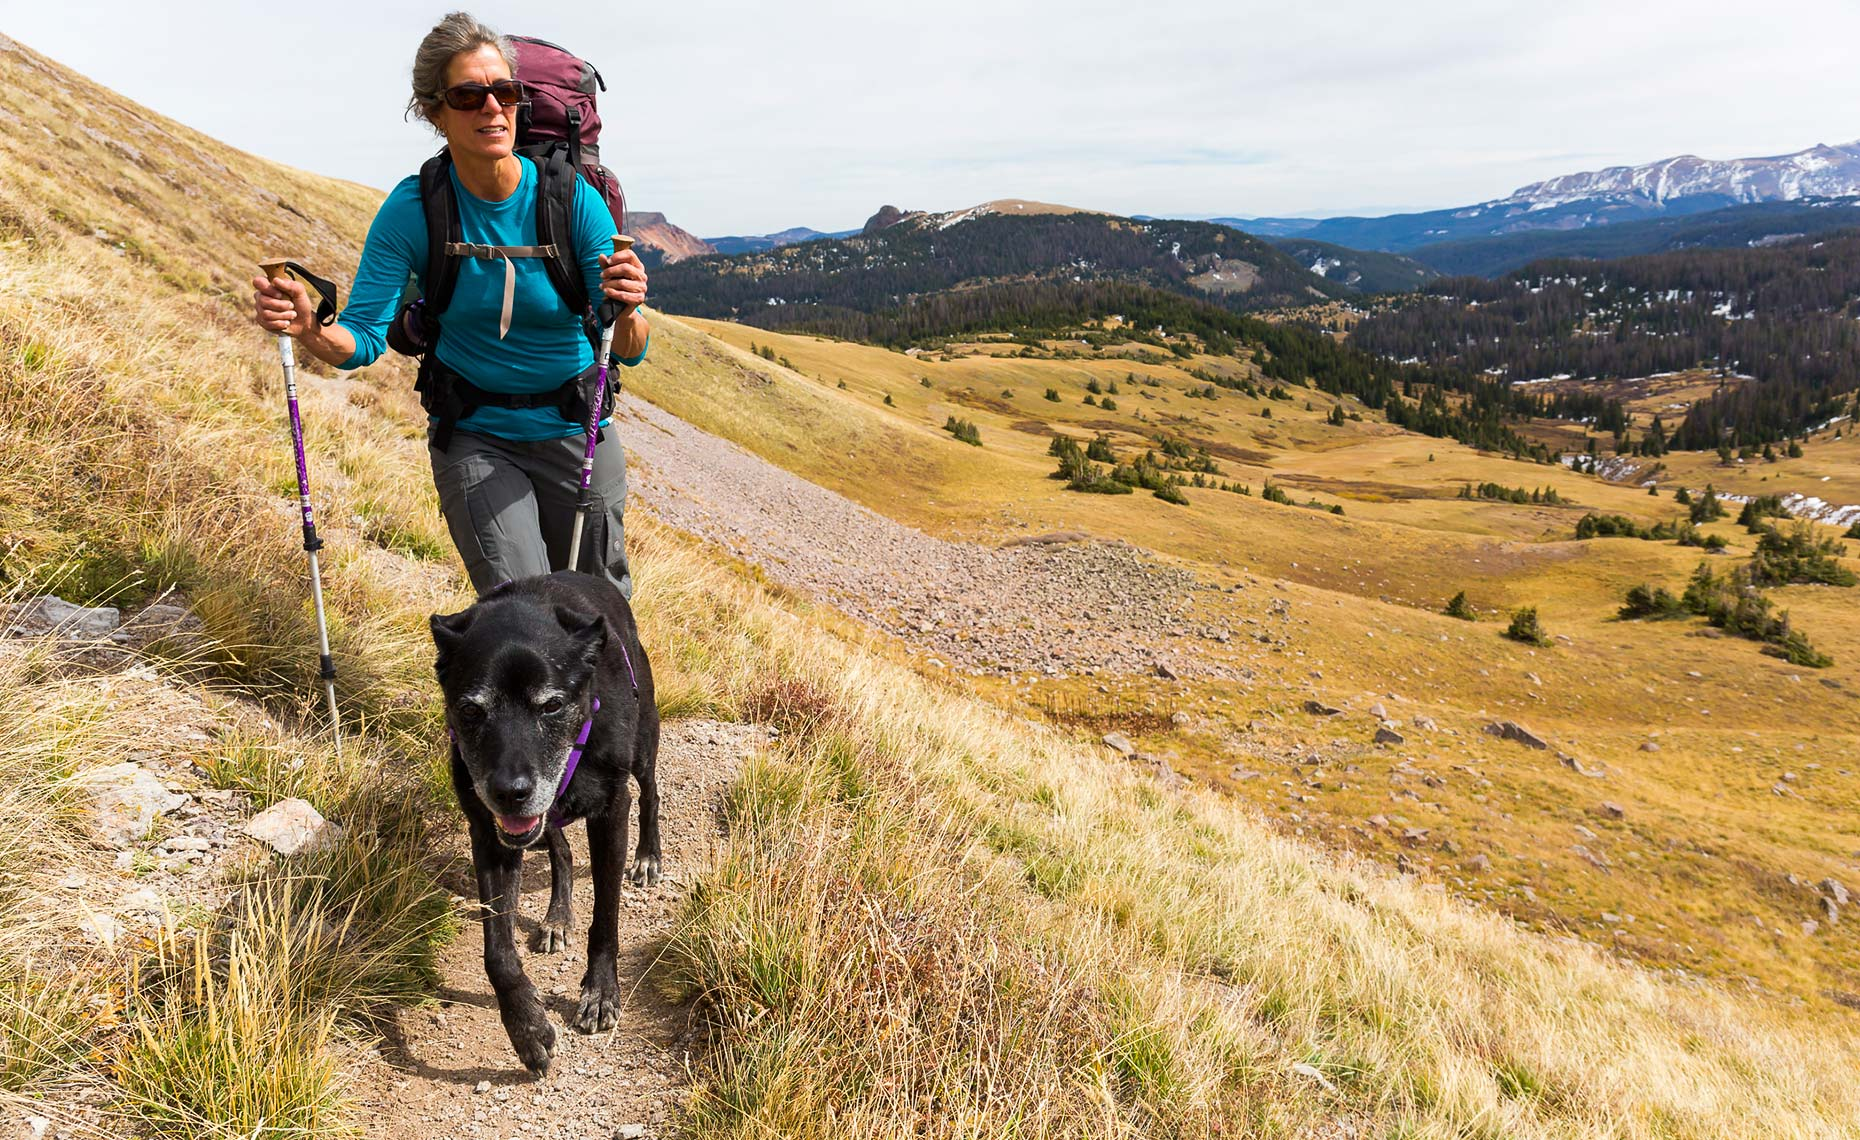 Hiking-Continental-Divide-Trail-Michael-DeYoung-MD141008VCO_HB006